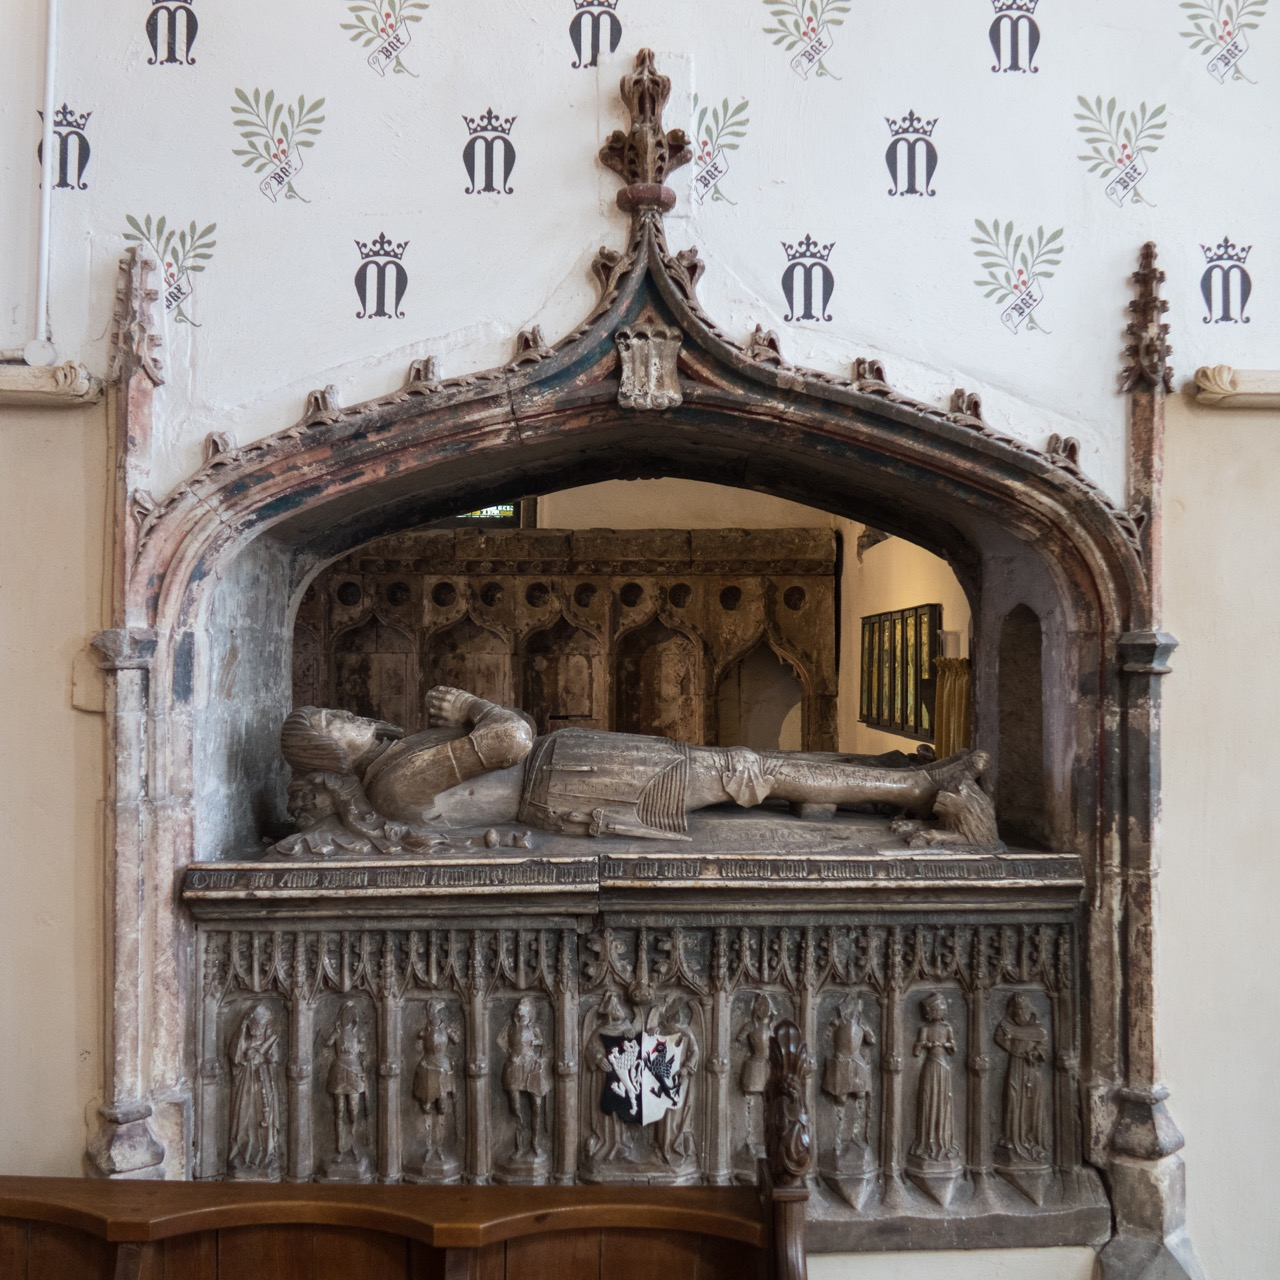 Monument for Bishop Marshall (d. 1496)